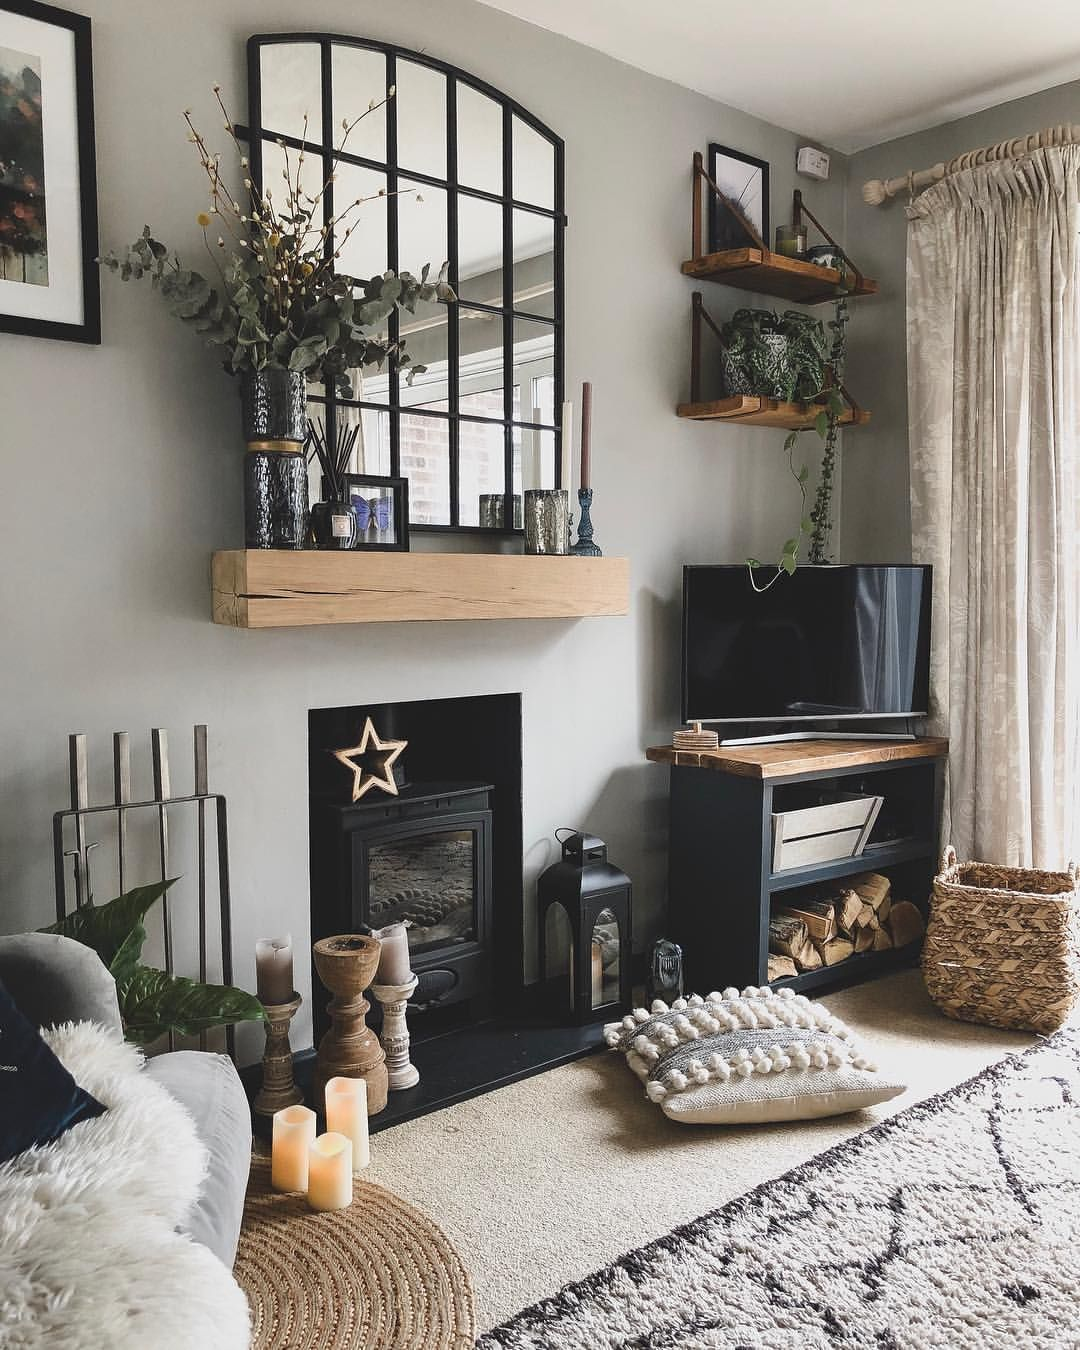 Living Room Tv Corner With Over Mantle Mirror Livingroom Greywalls Mantle Logb Living Room Decor Fireplace Living Room Design Small Spaces Cosy Living Room